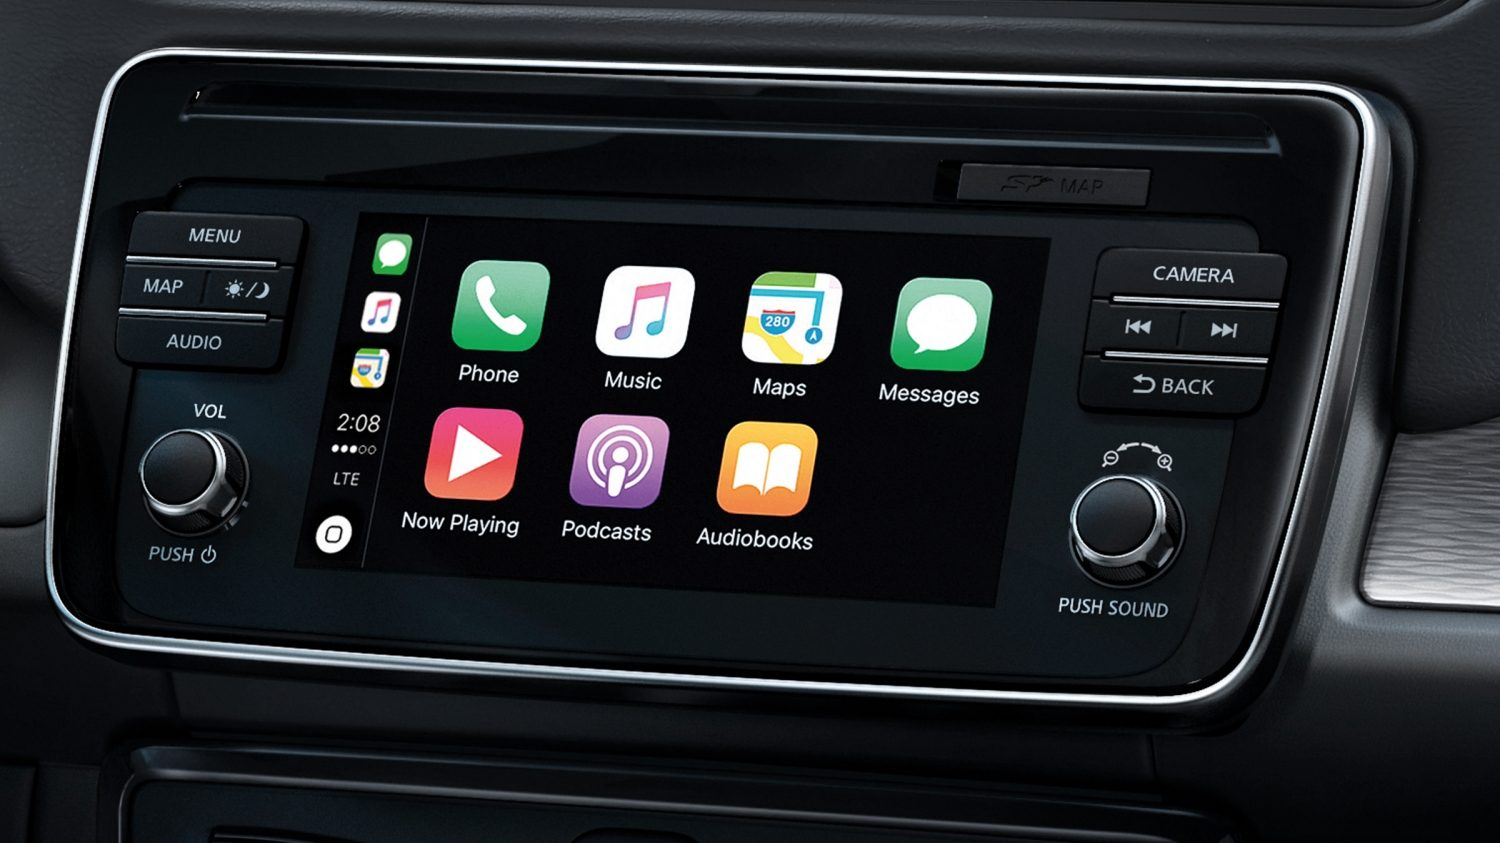 Ny Nissan LEAF navigationsskærm, der viser Apple CarPlay